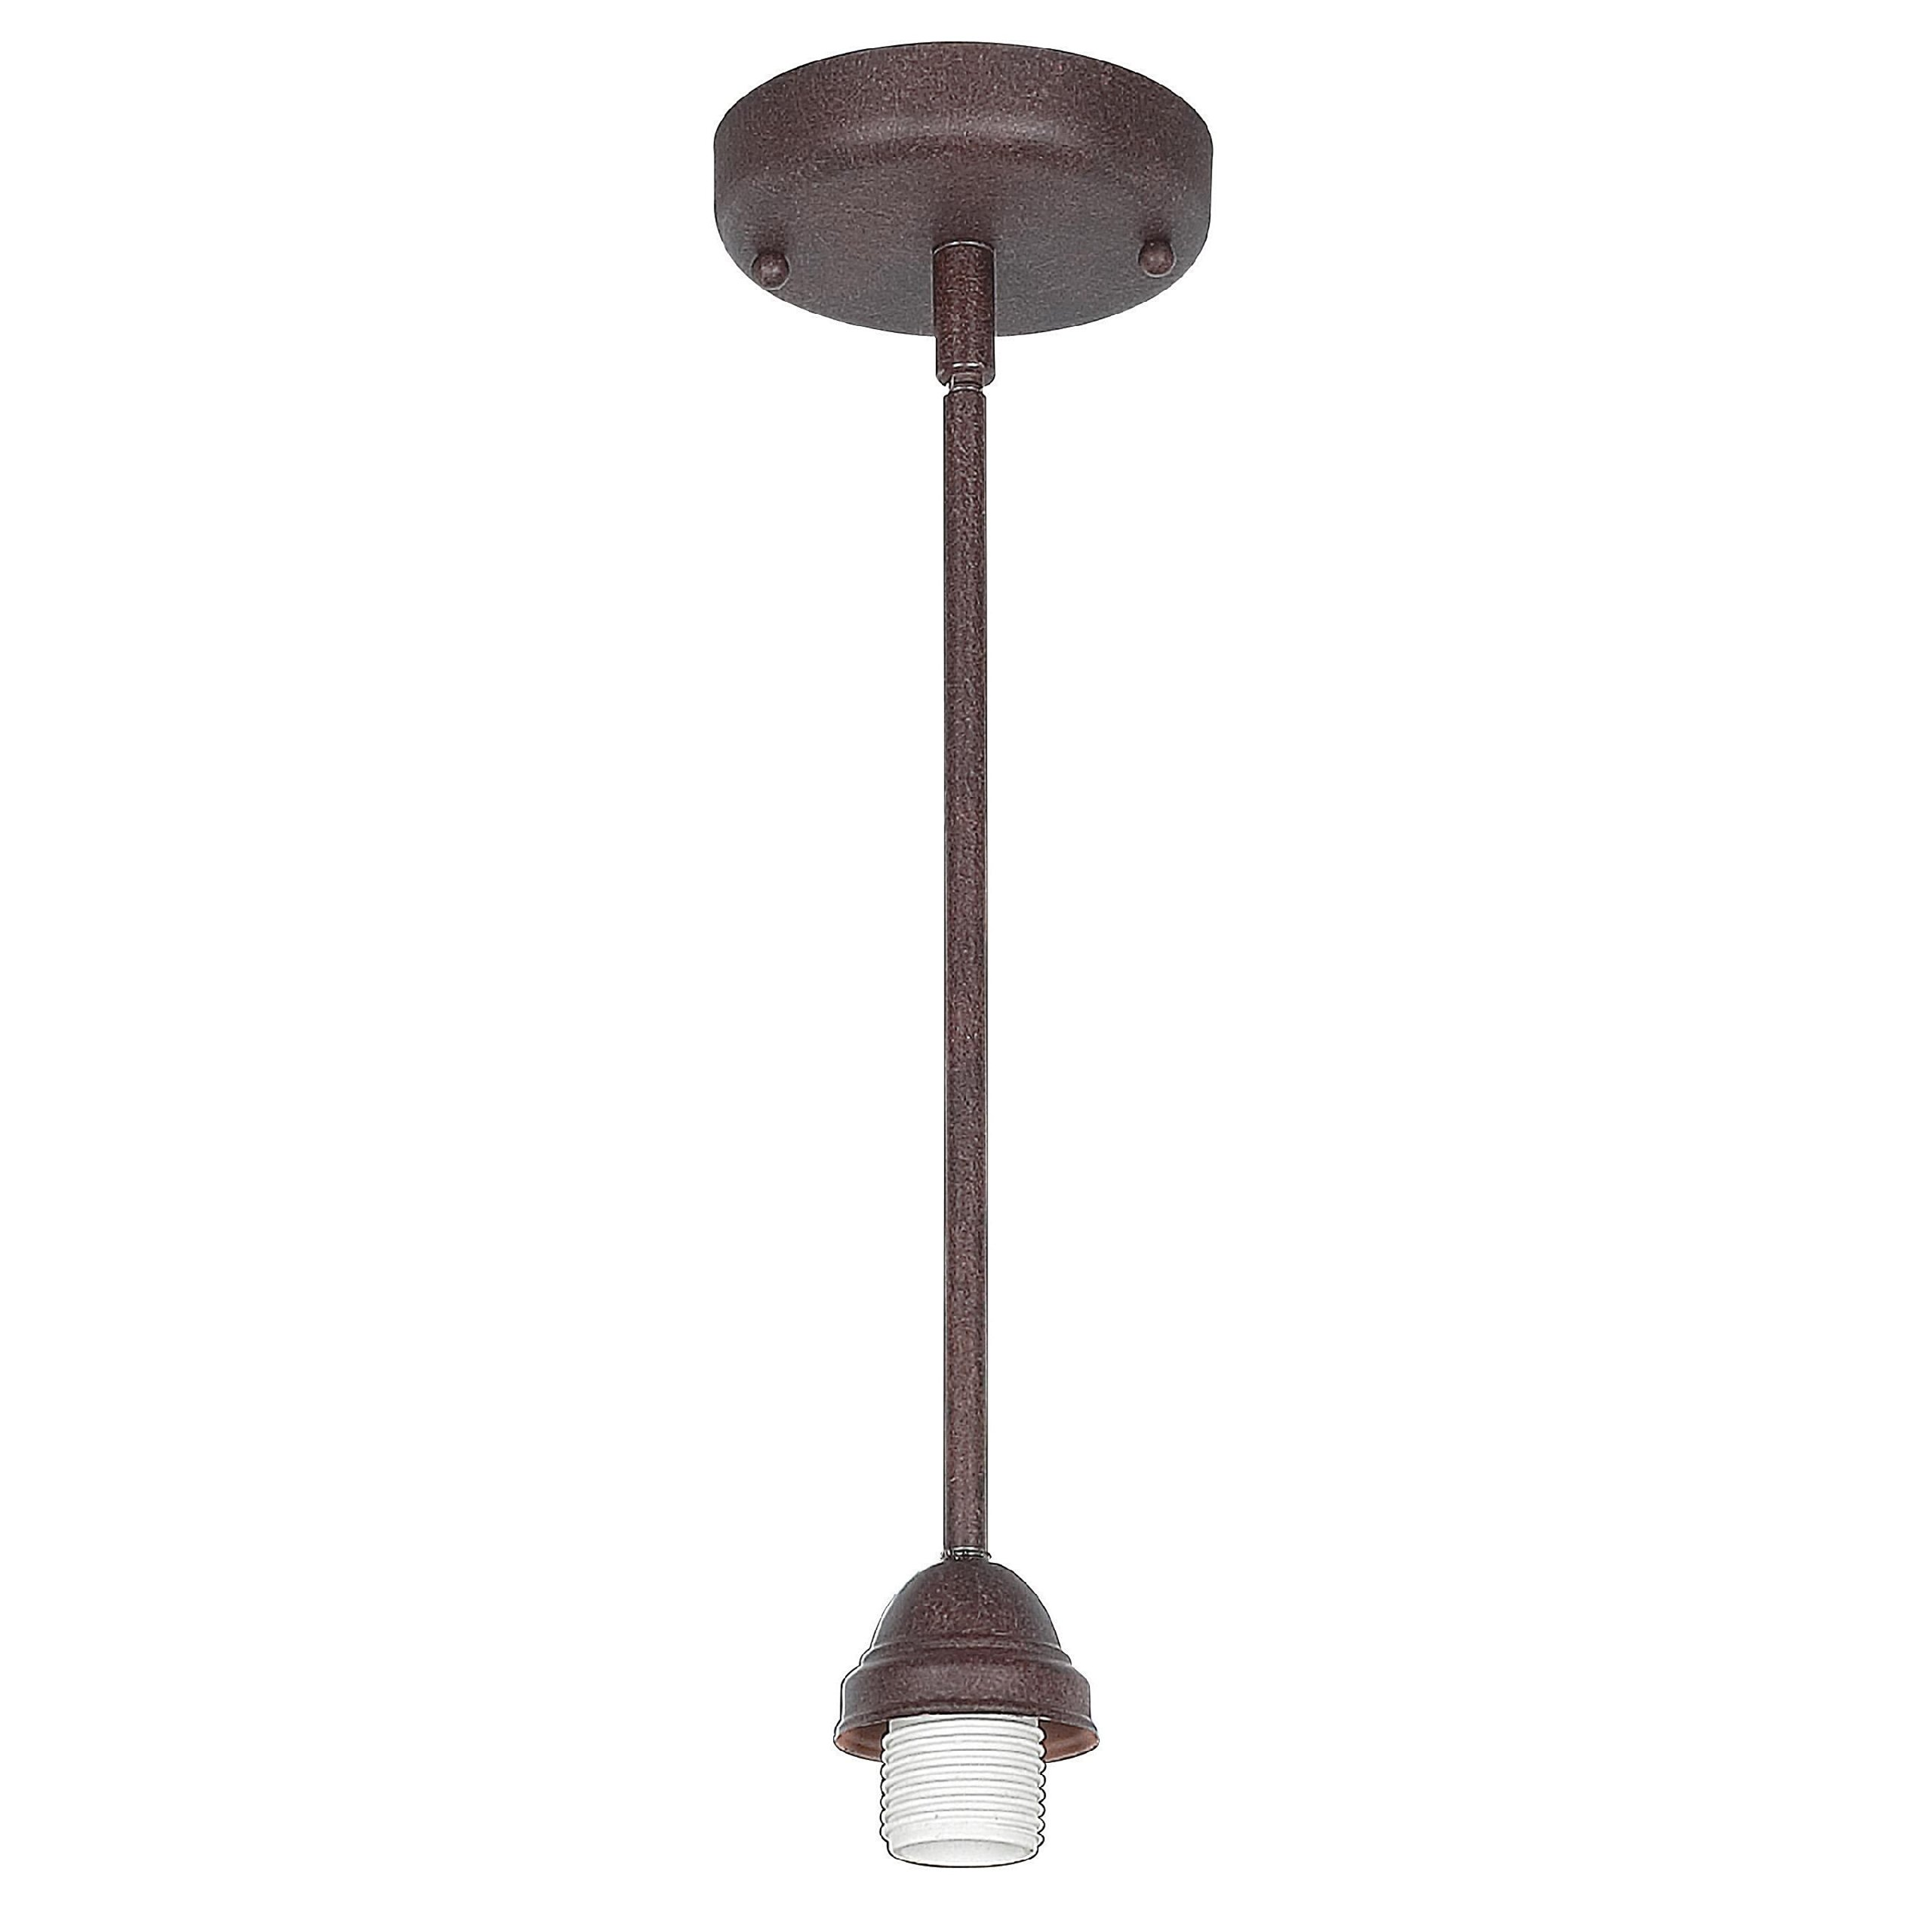 Sunset Lighting K1018-62 Stem, Rubbed Bronze Finish